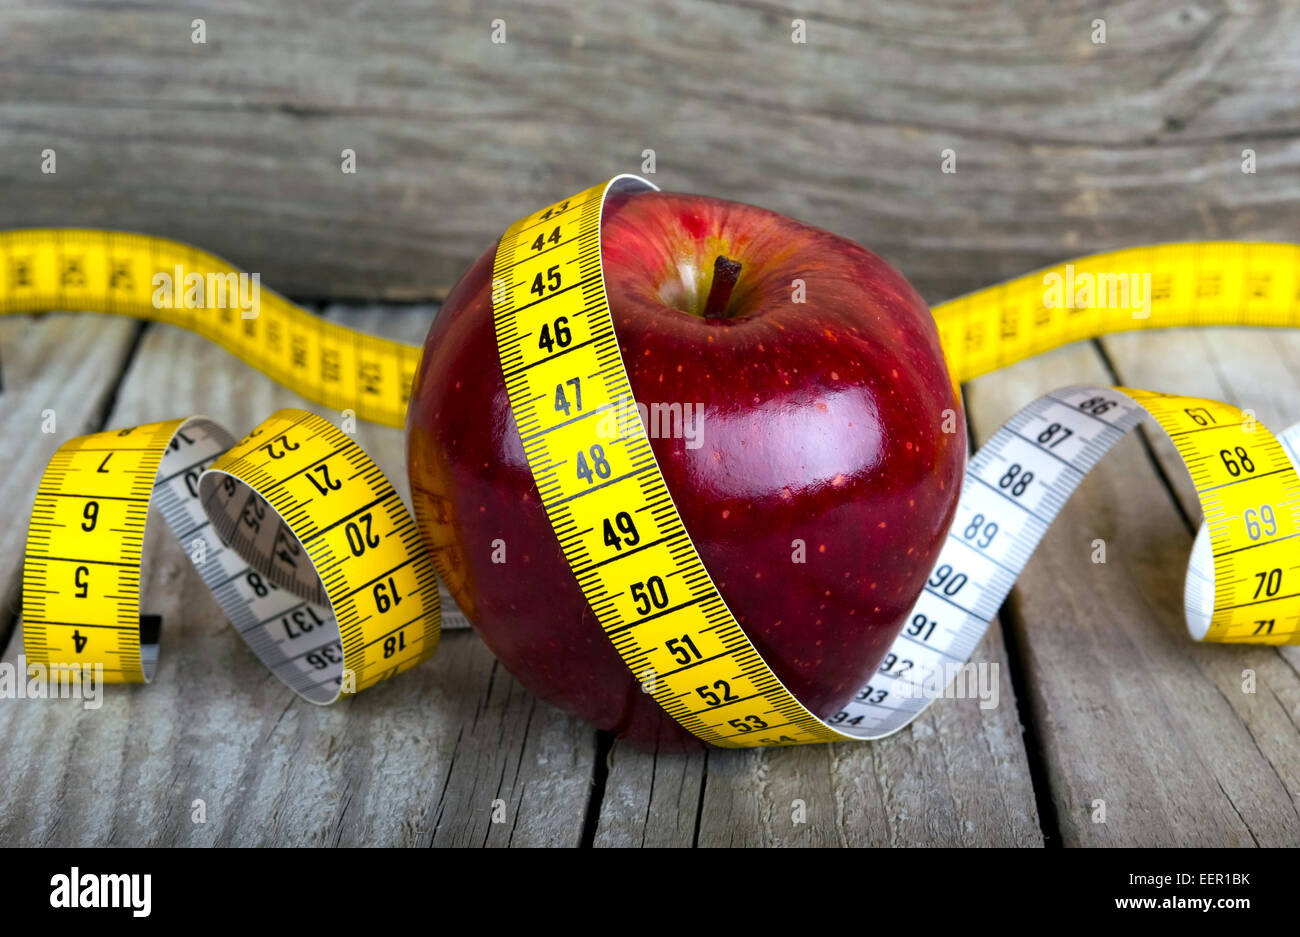 Measuring tape wrapped around a apple weight loss photo - Stock Image